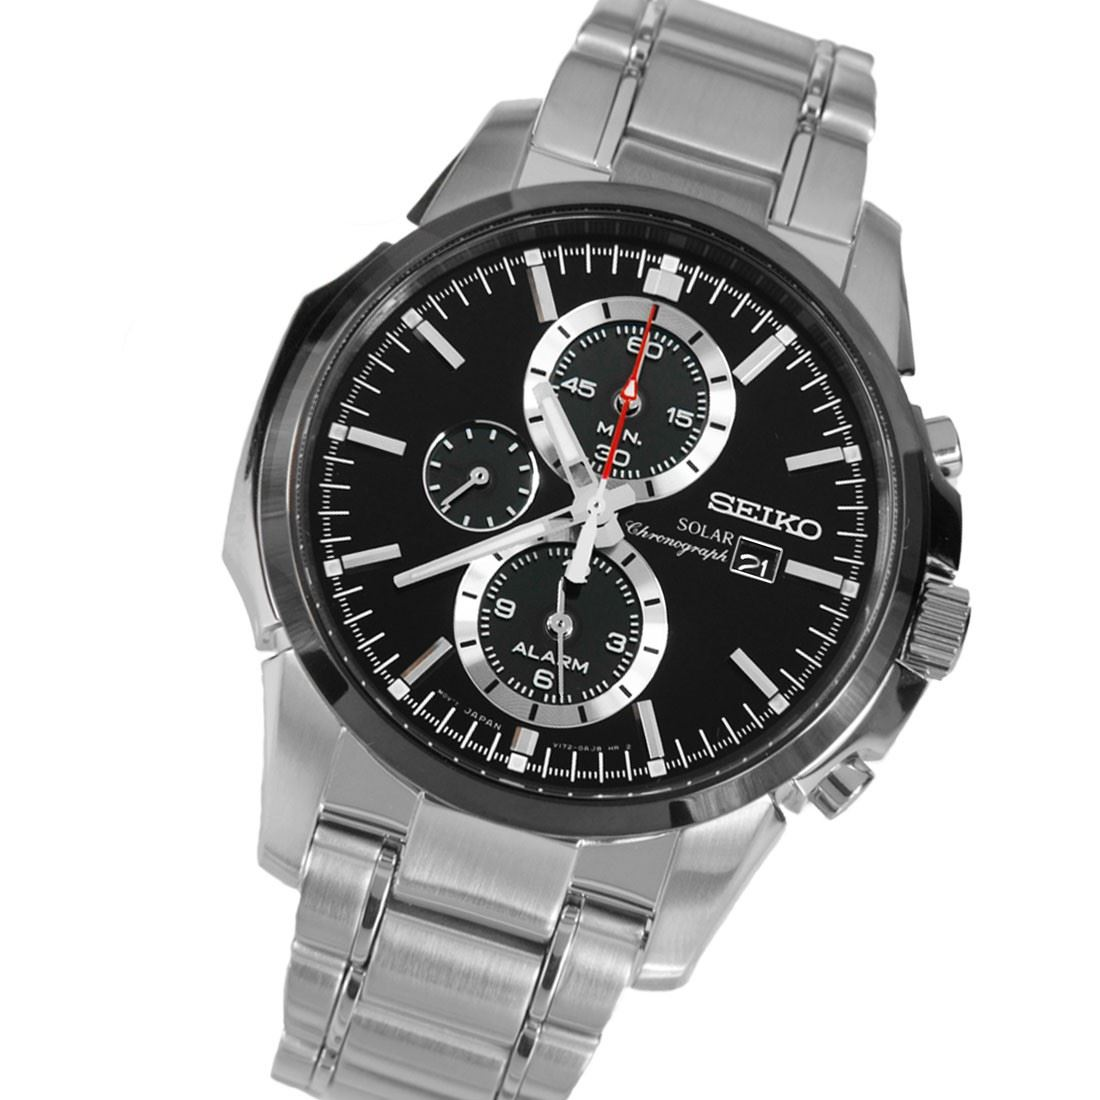 seiko solar chronograph mens watch ssc081p1 ssc083p1. Black Bedroom Furniture Sets. Home Design Ideas